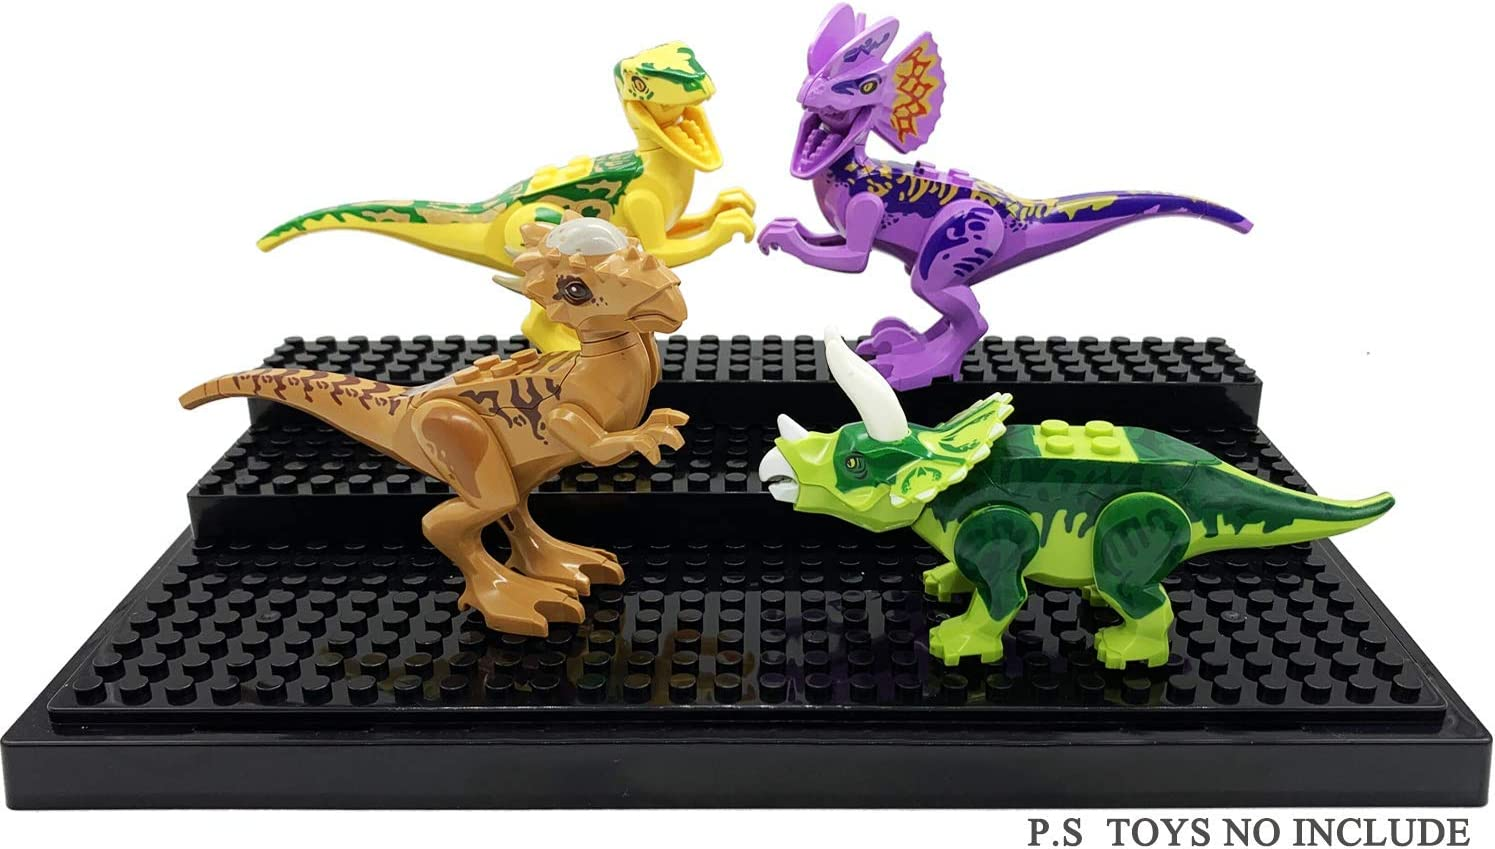 Display Box Gifts for Children,Black HYtiger Display Case for Minifigure Action Figures Blocks